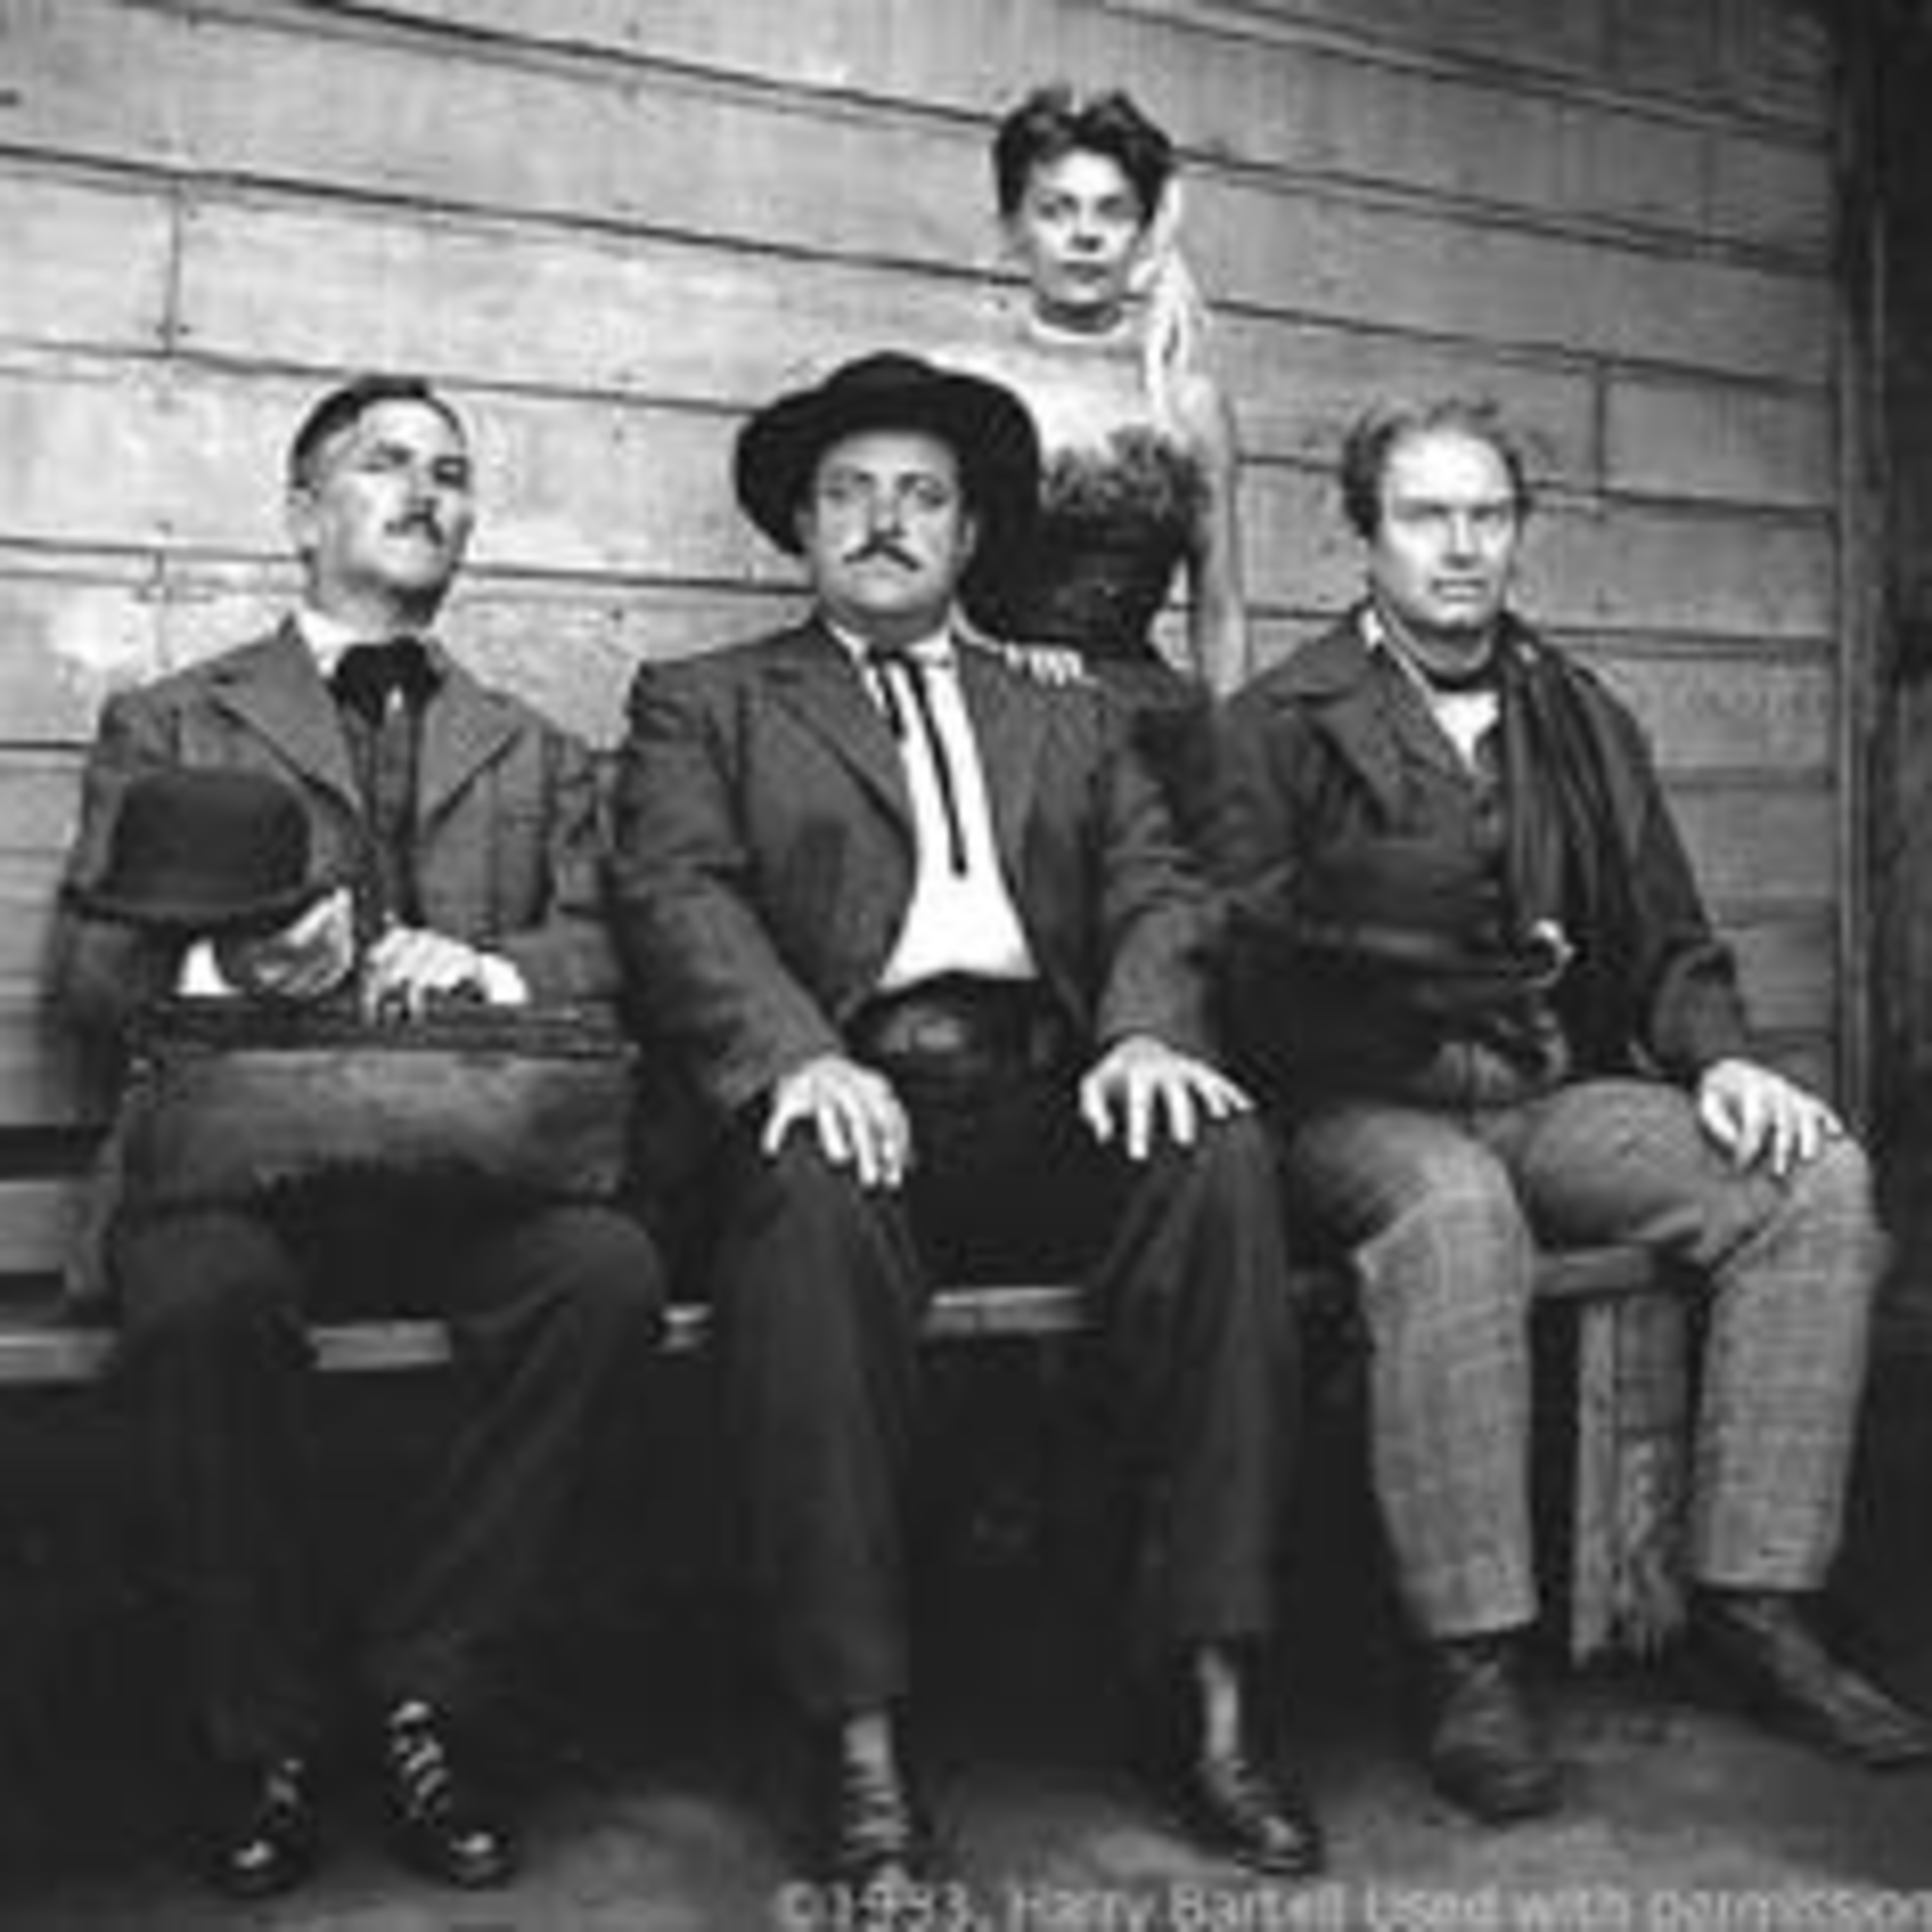 The Gunsmoke Podcast - The Soldier - Tacetta - Radio's Last Great Dramatic Series - Episodes 53 and 54